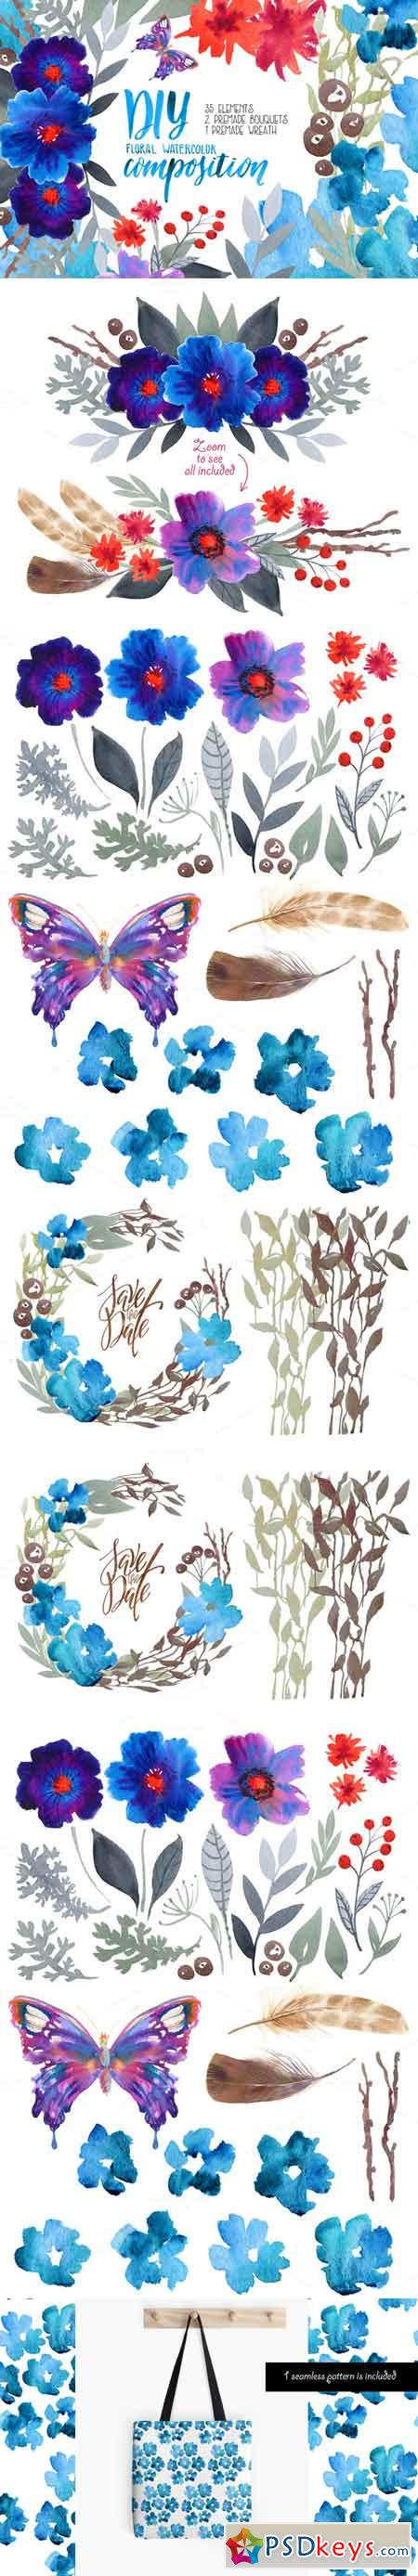 Watercolor floral DIY - 35 elements! 674059